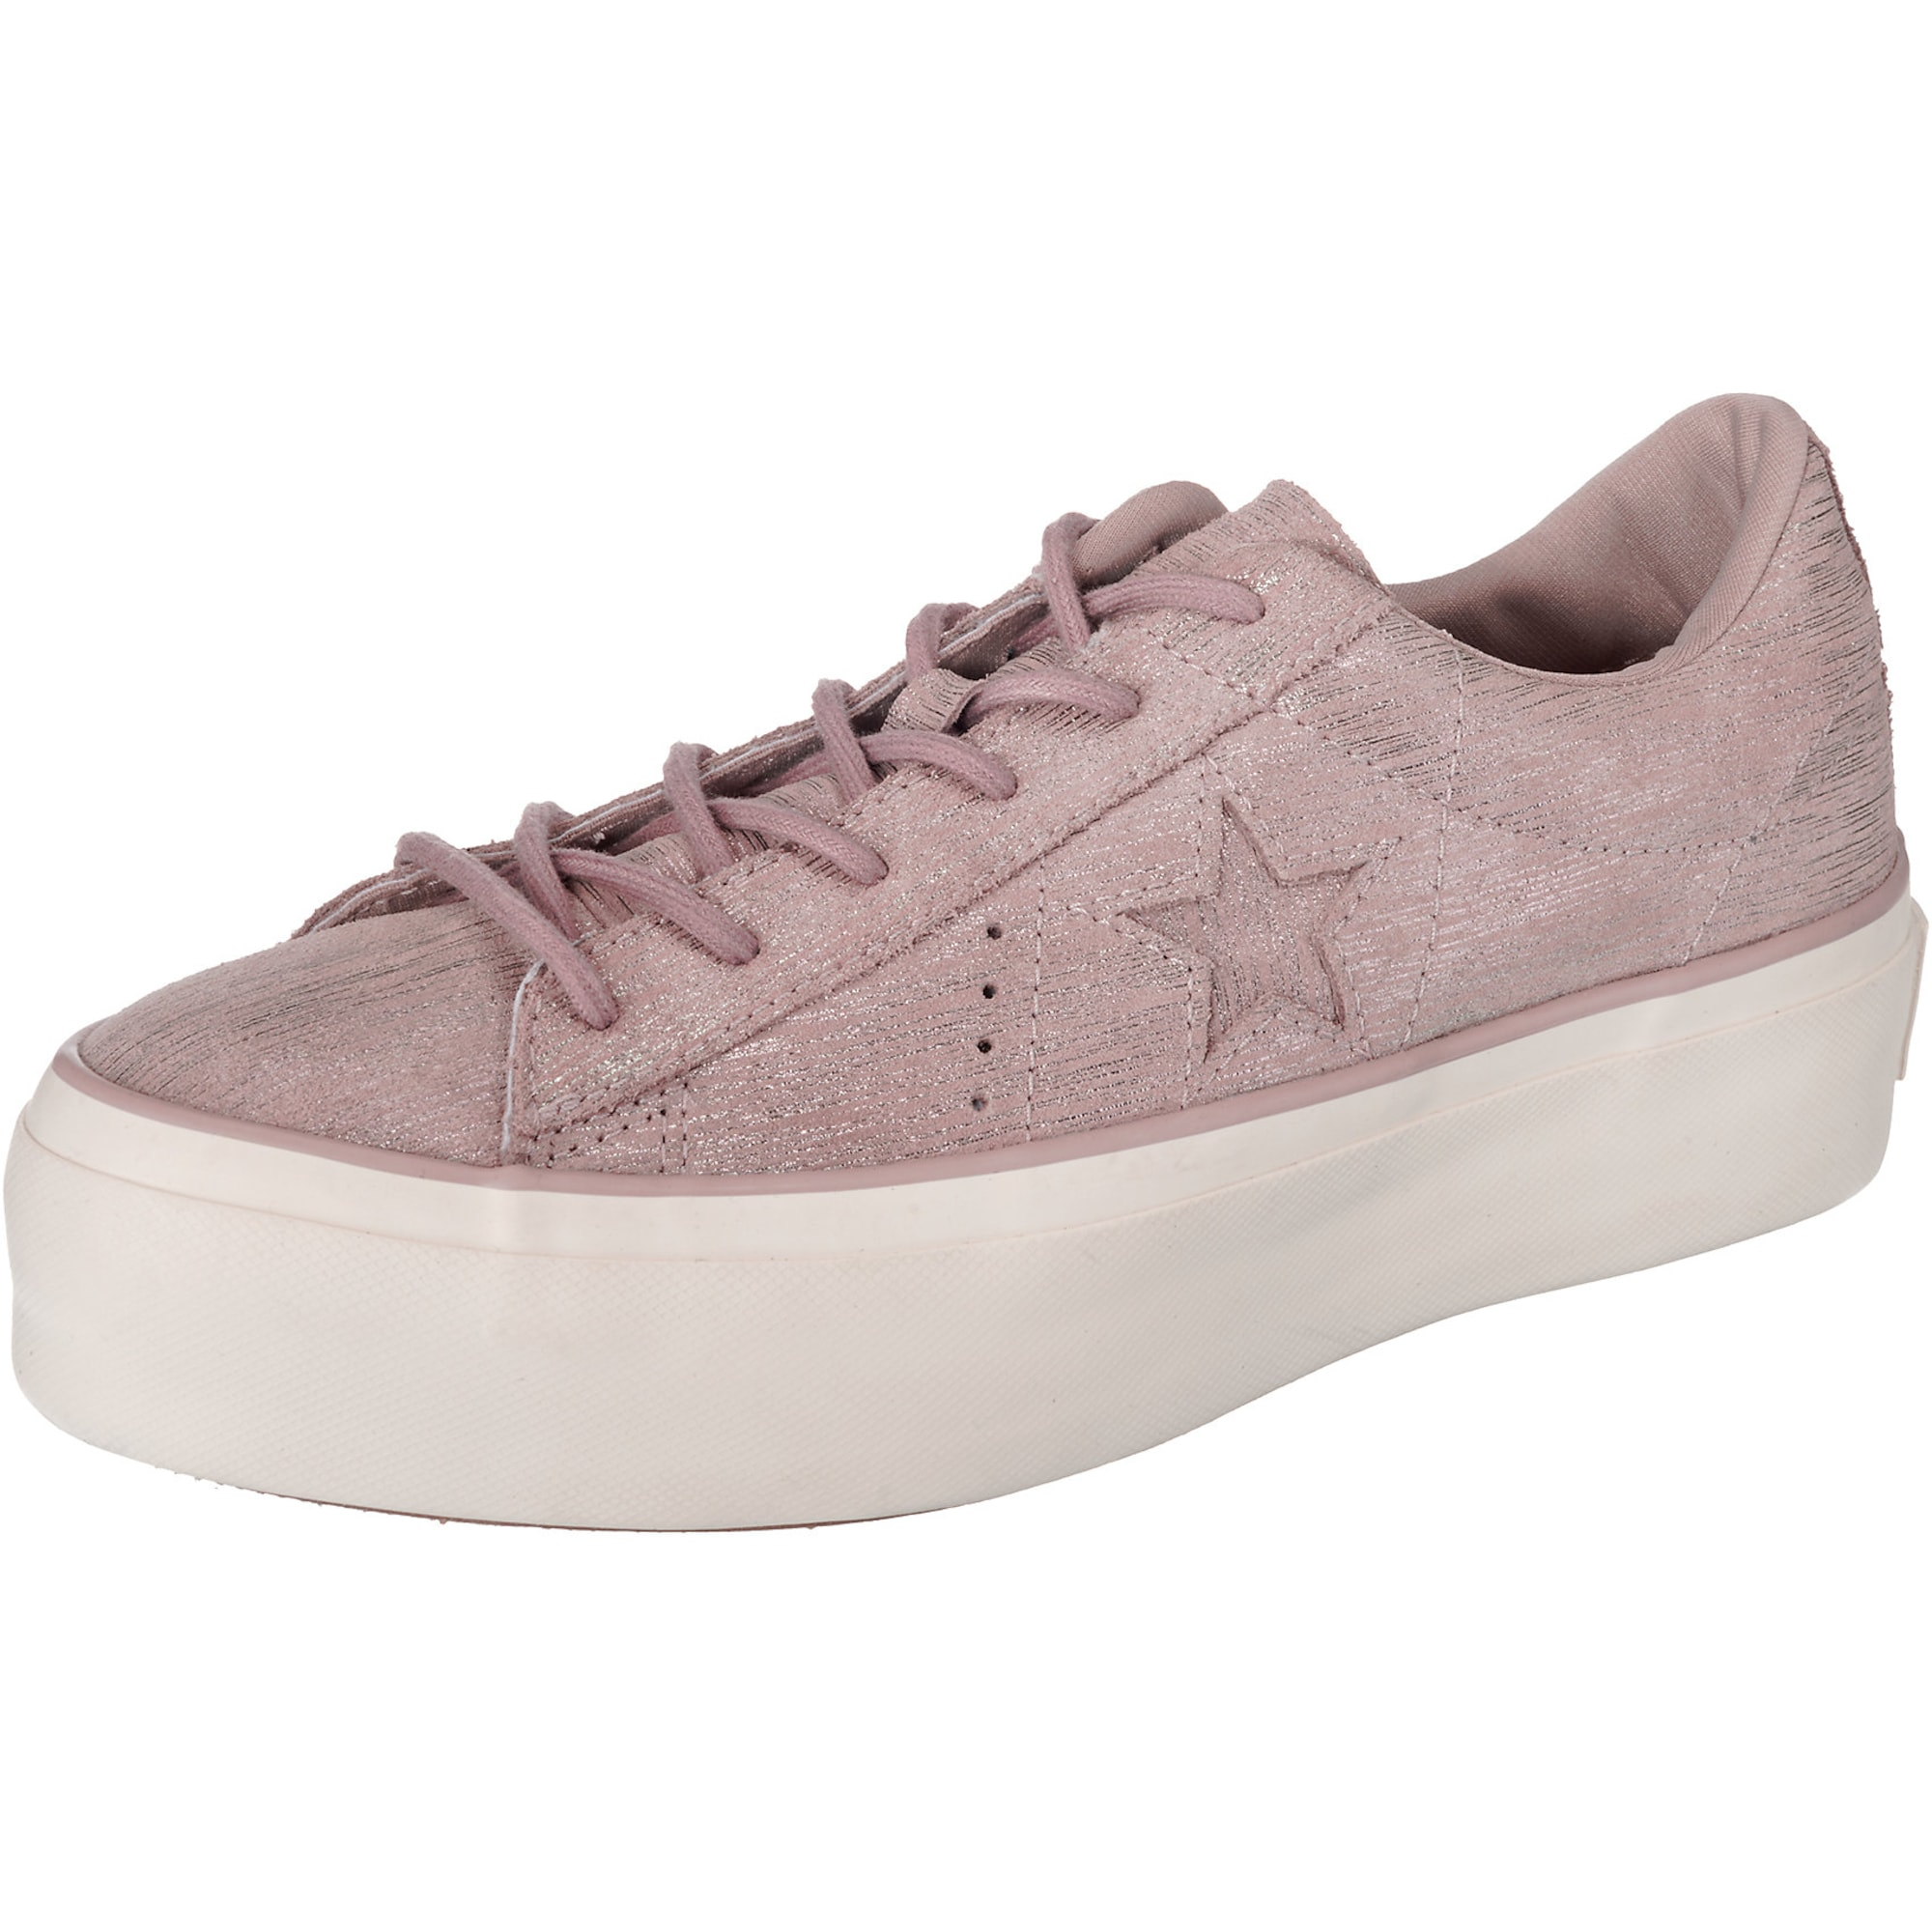 CONVERSE, Dames Sneakers laag 'One Star Platform - OX', taupe / wit